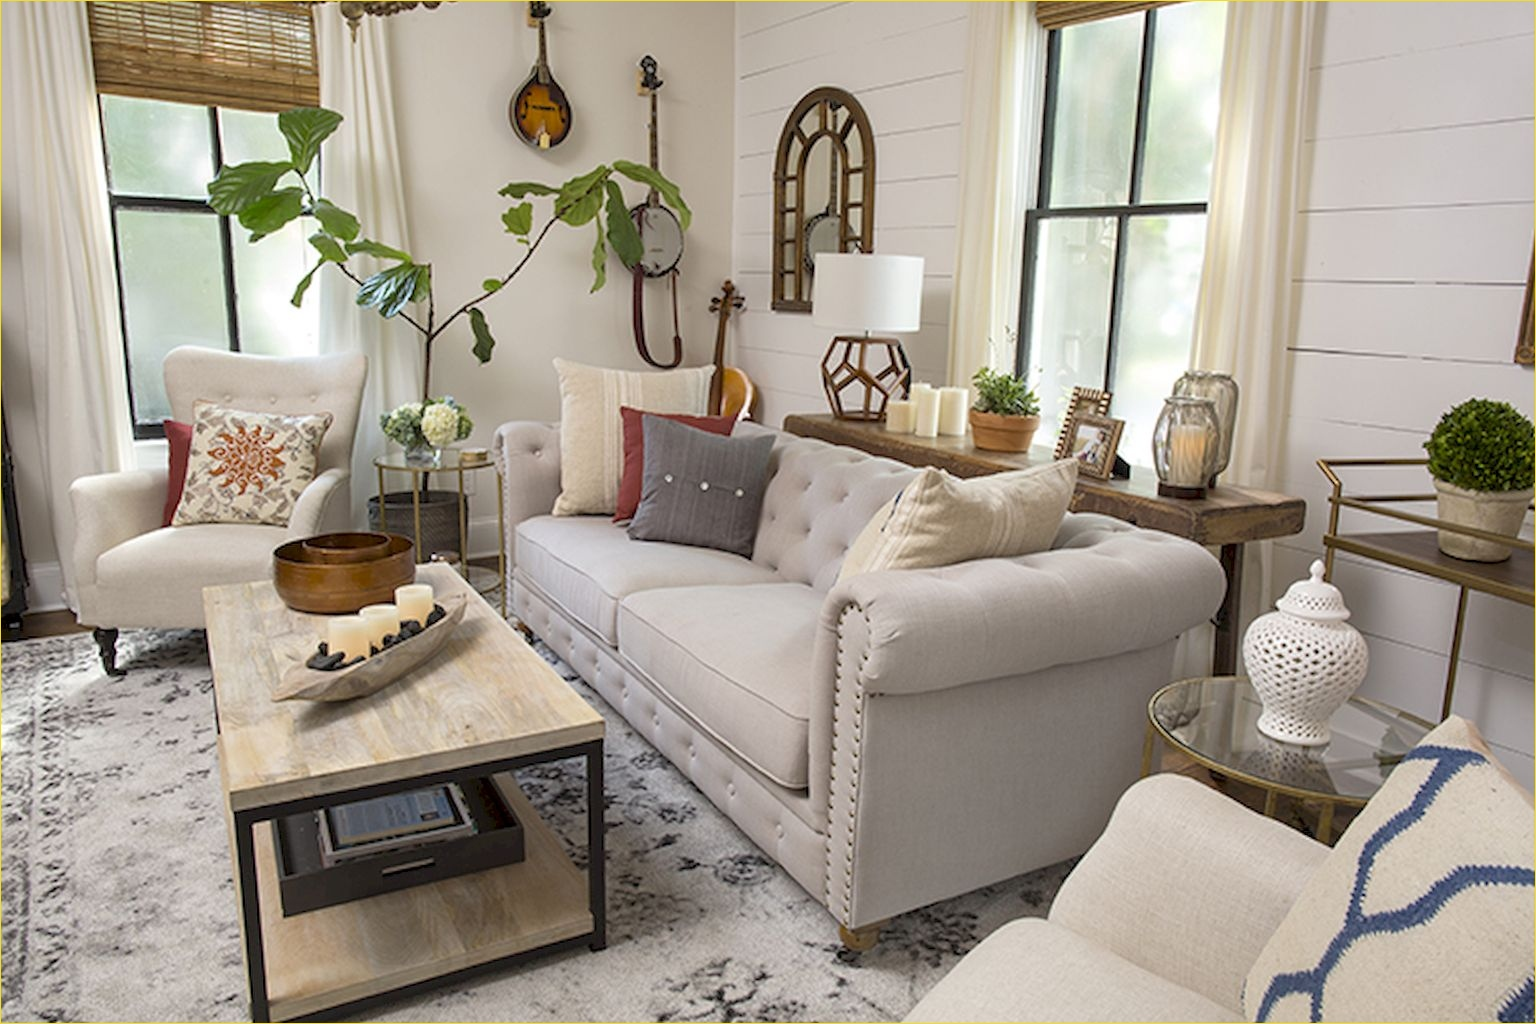 20 Farmhouse Living Room Ideas Rustic And Modern Style